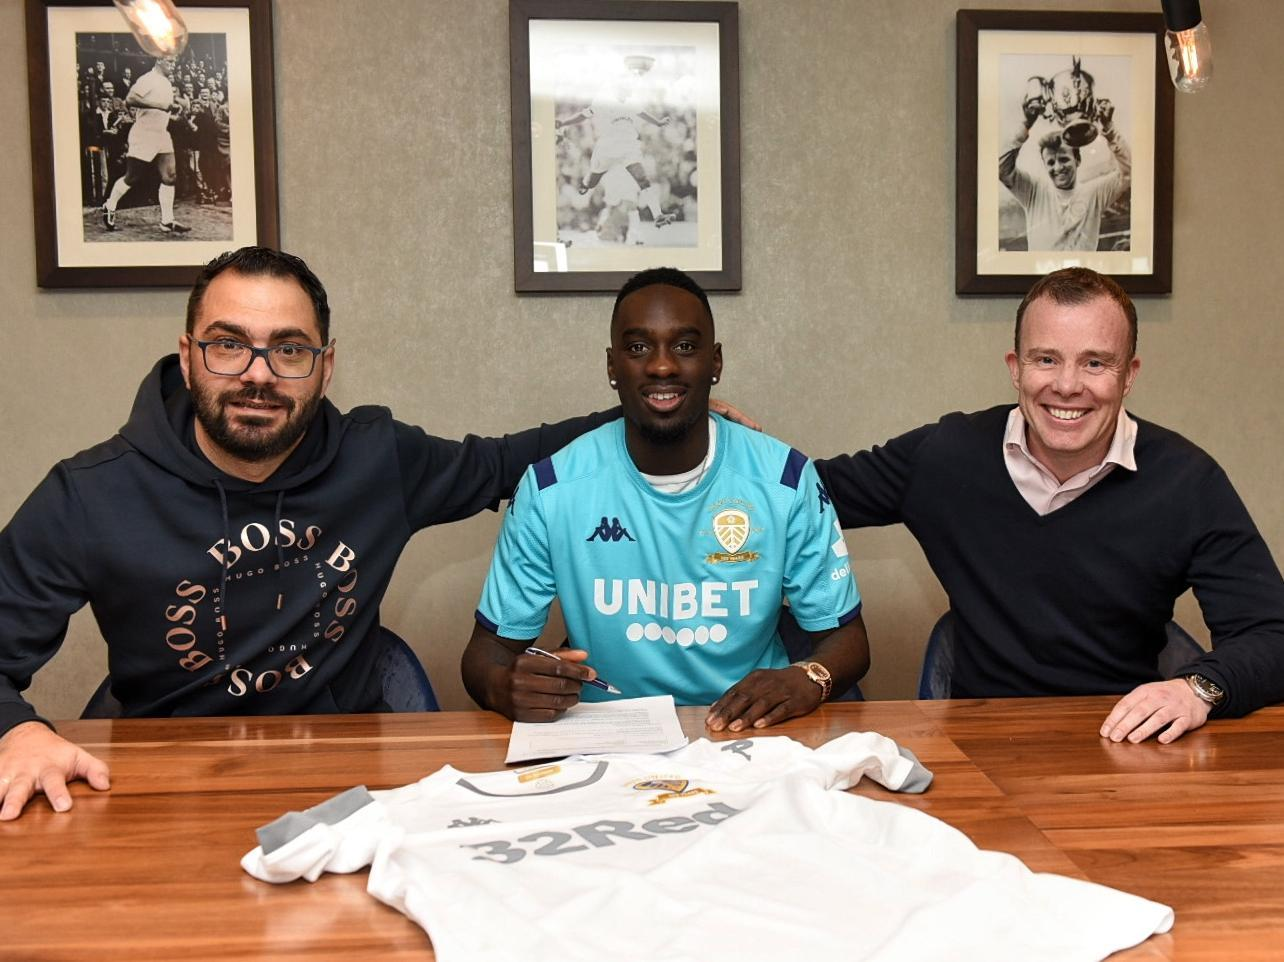 Private jets and adjoining hotel rooms - how Leeds United wrapped up Jean-Kevin Augustin transfer to complete January business